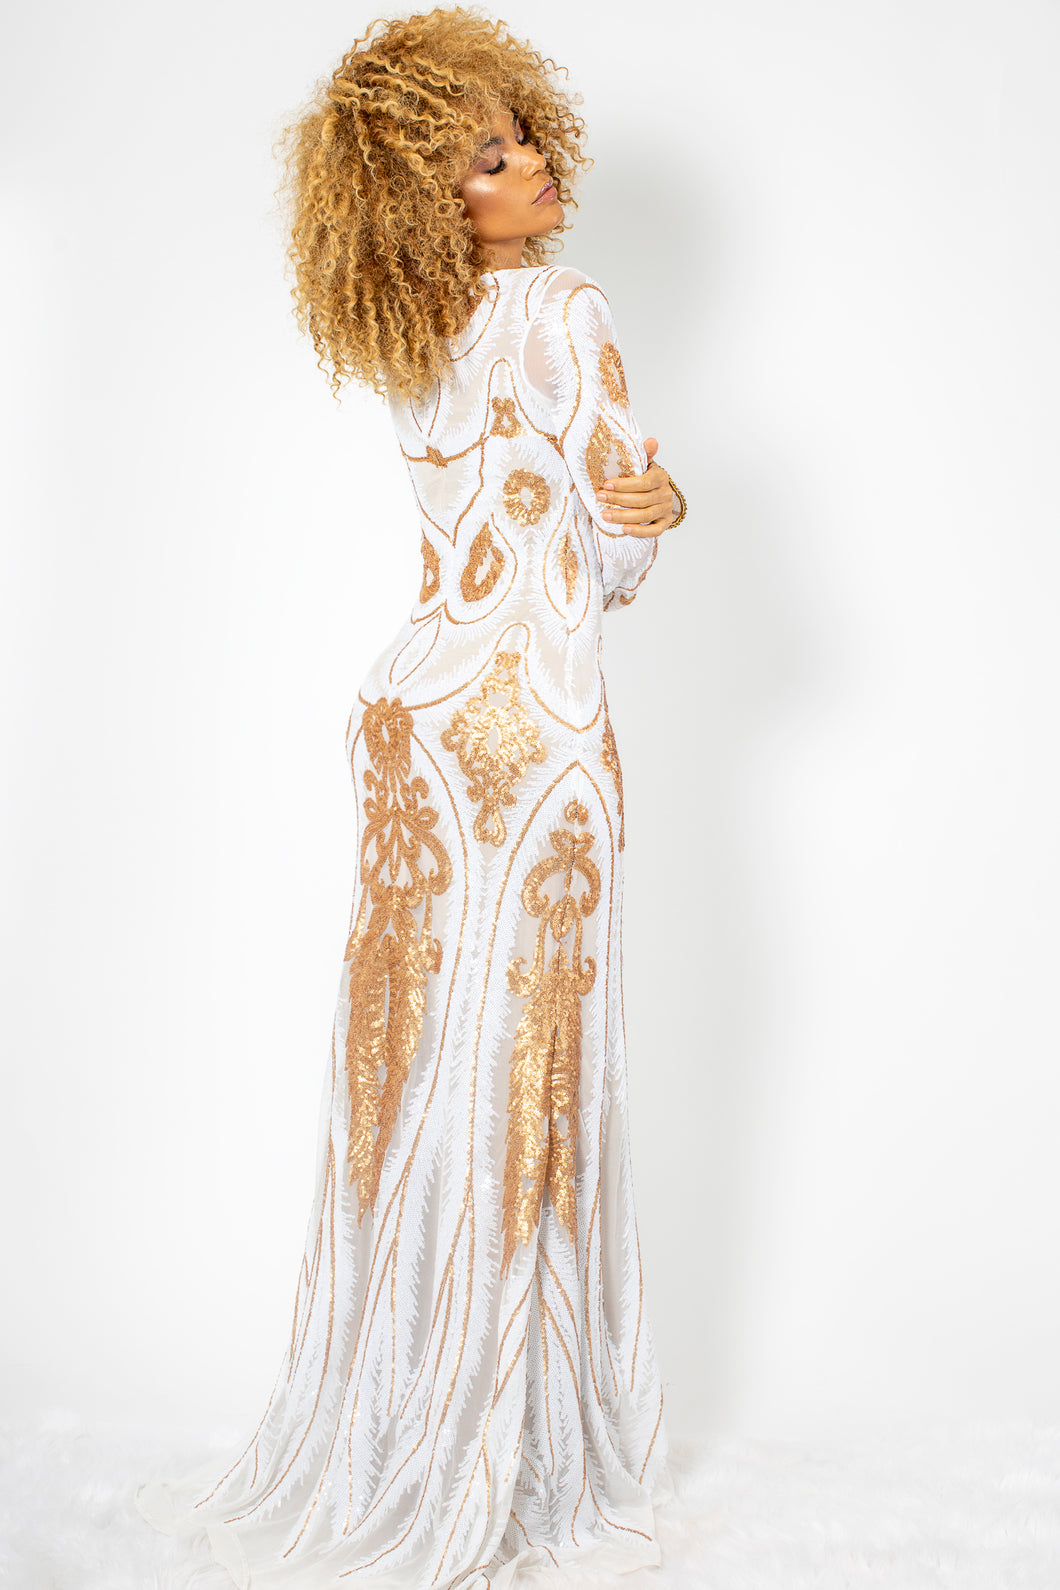 Maesa Gold and White Sequins White Long Dress - BACCIO Couture